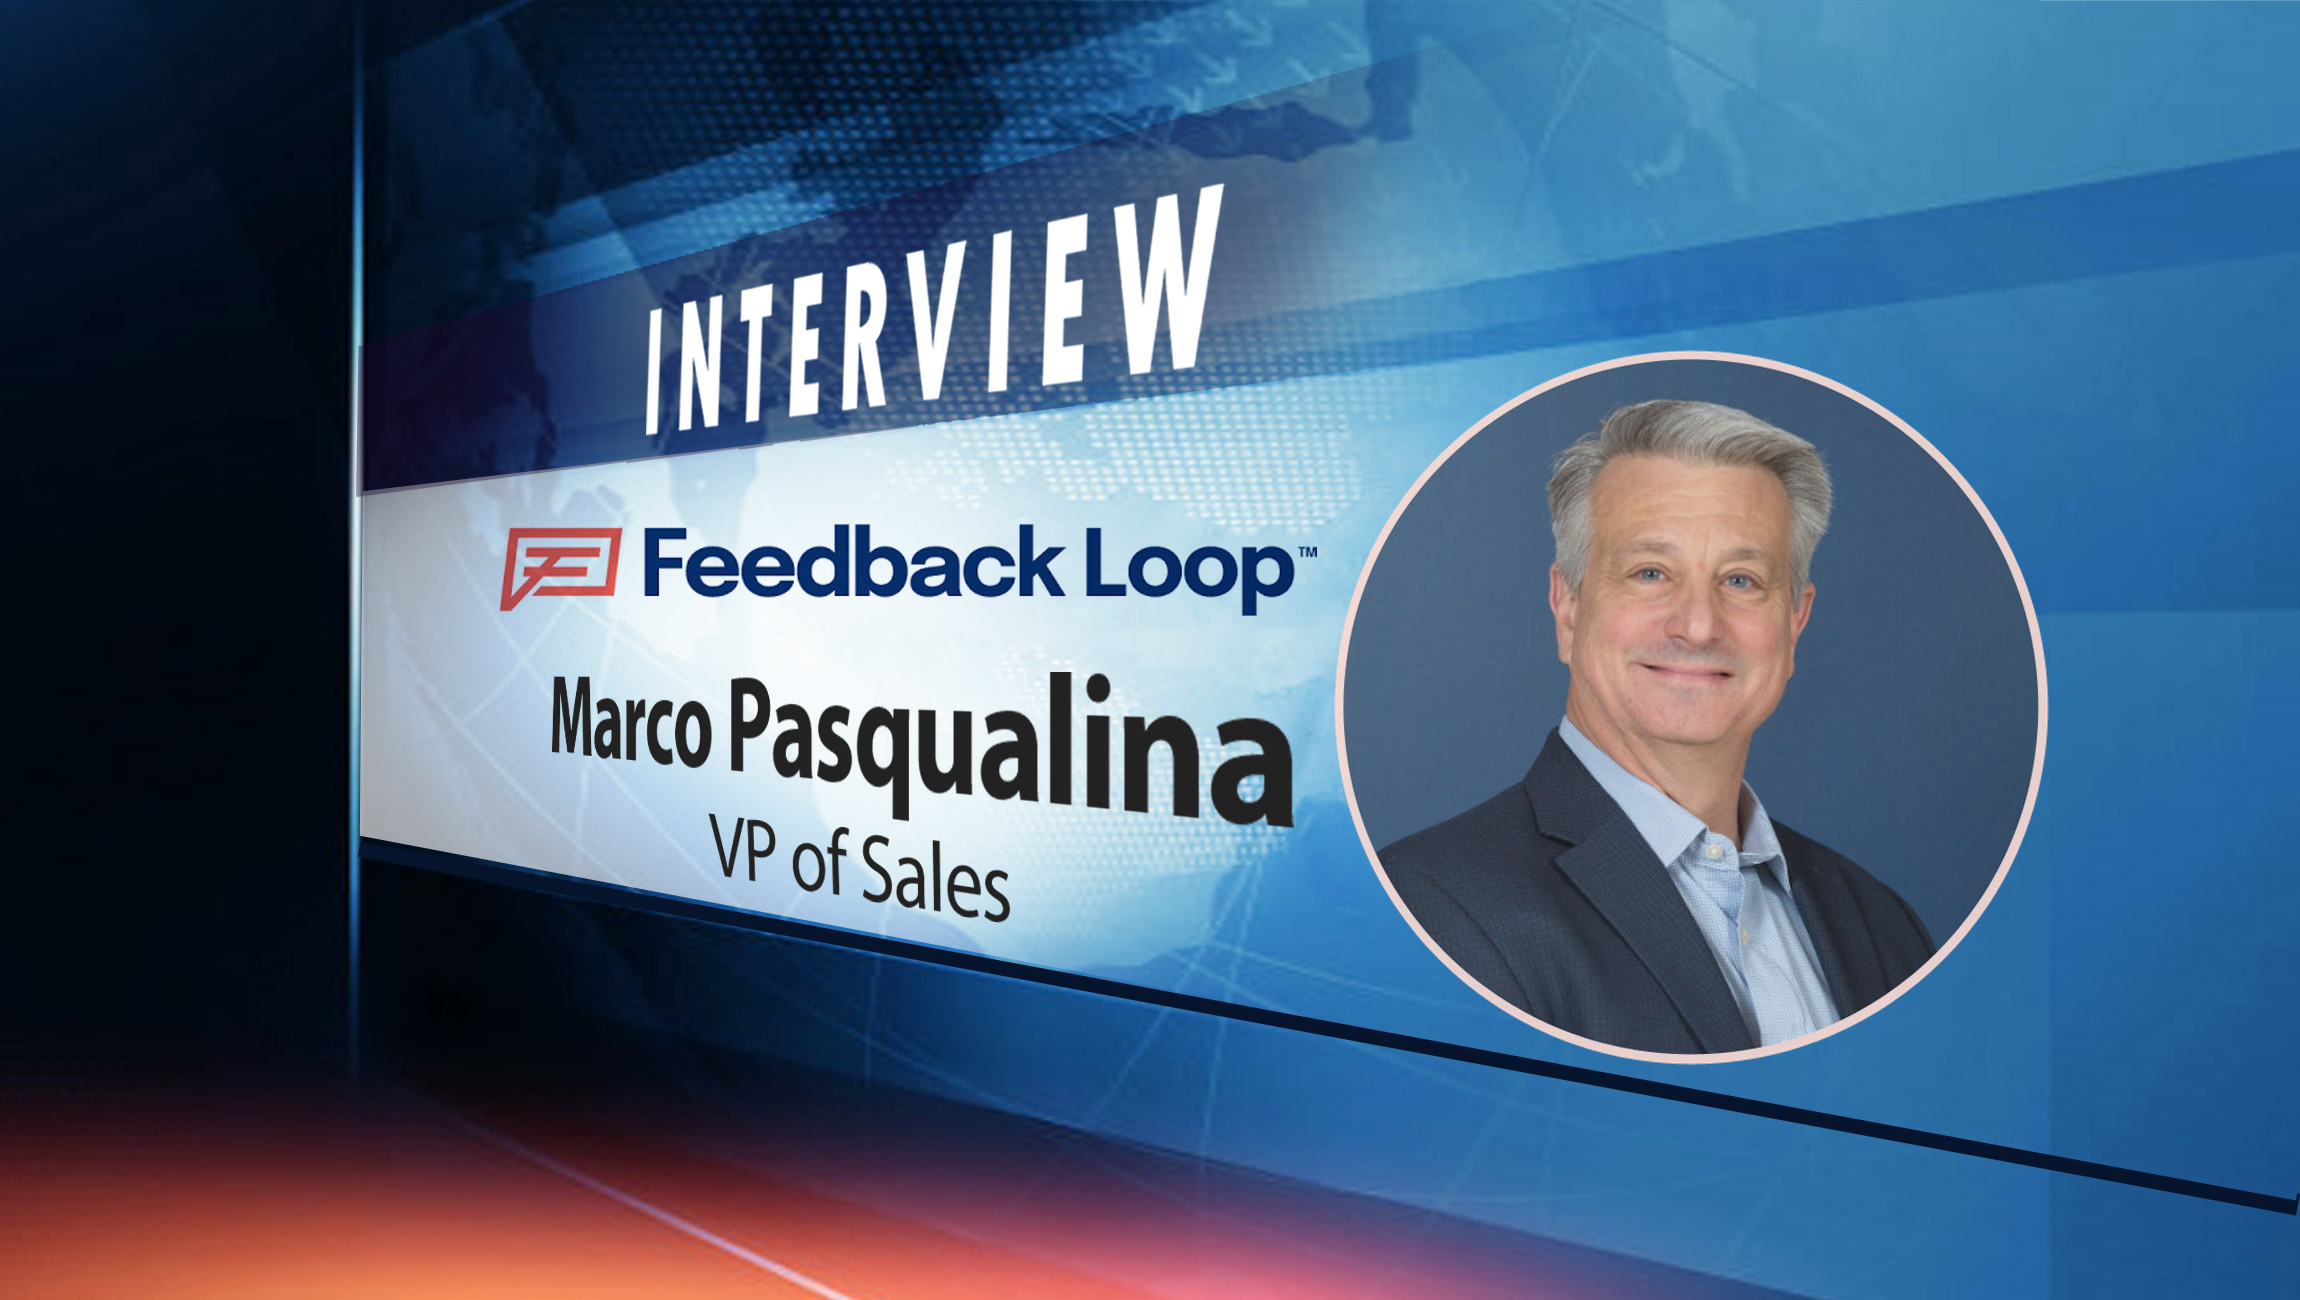 SalesTechStar Interview with Marco Pasqualina, VP of Sales at Feedback Loop